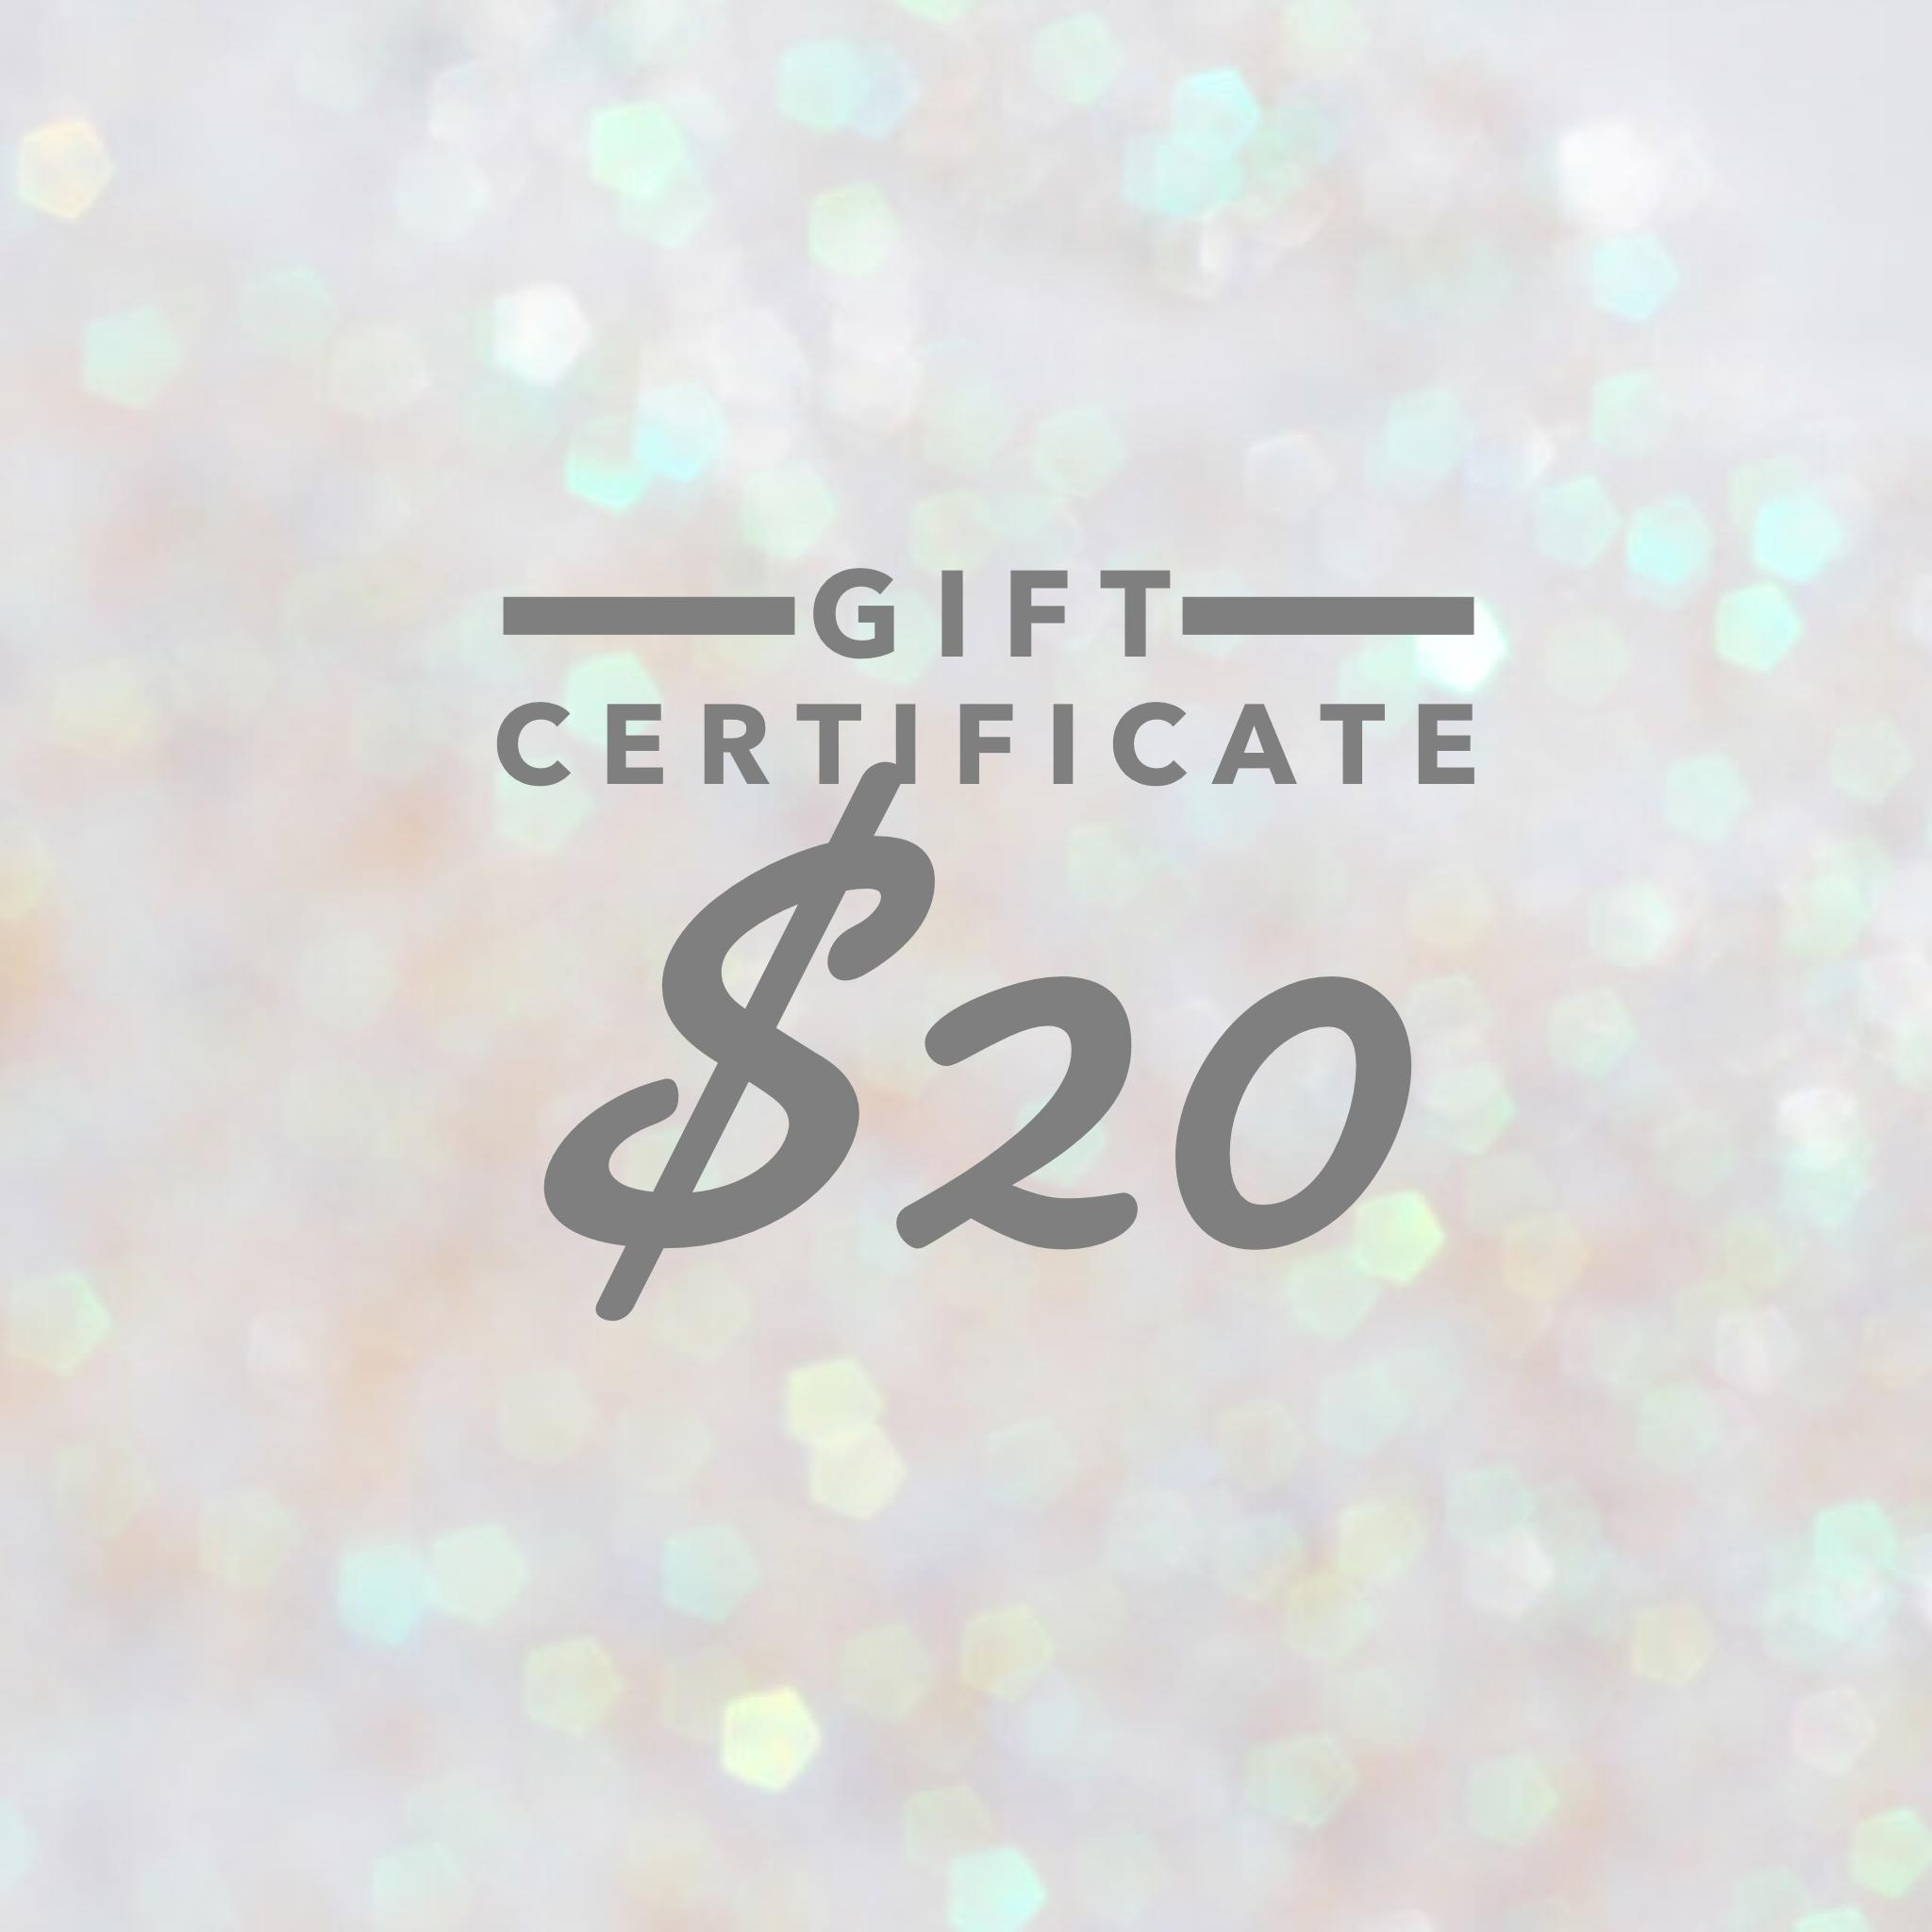 Gift Certificate $20.00